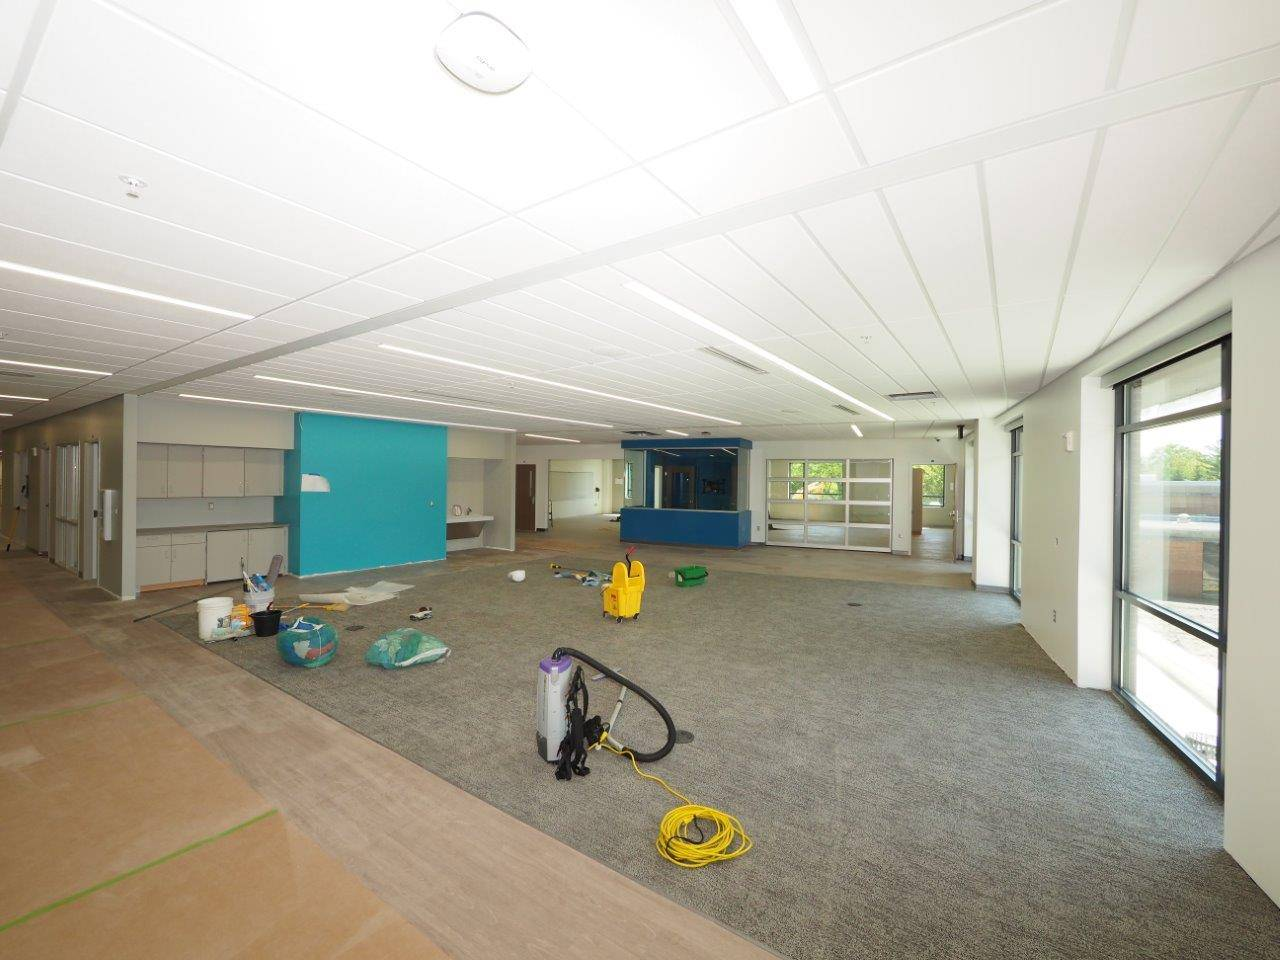 Inside the new Greensview Elementary School